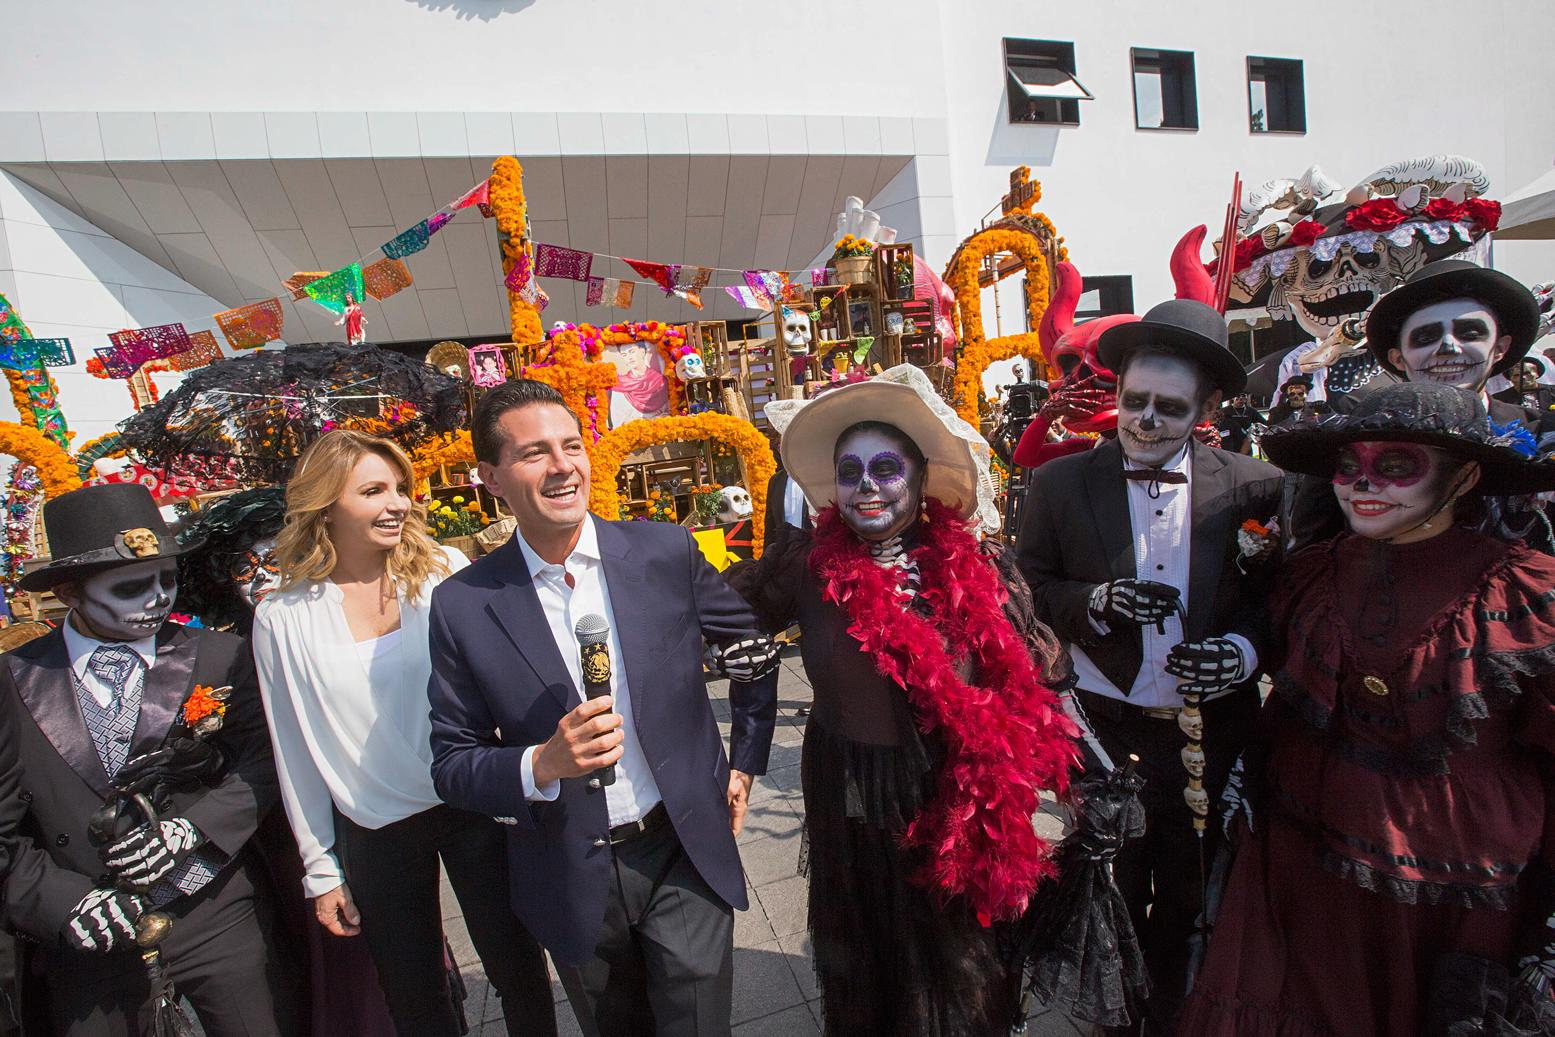 One thousand two hundred volunteers participated in the Day of the Dead parade, which was seen by 300,000 people from the Angel of Independence to the Zócalo in Mexico City.